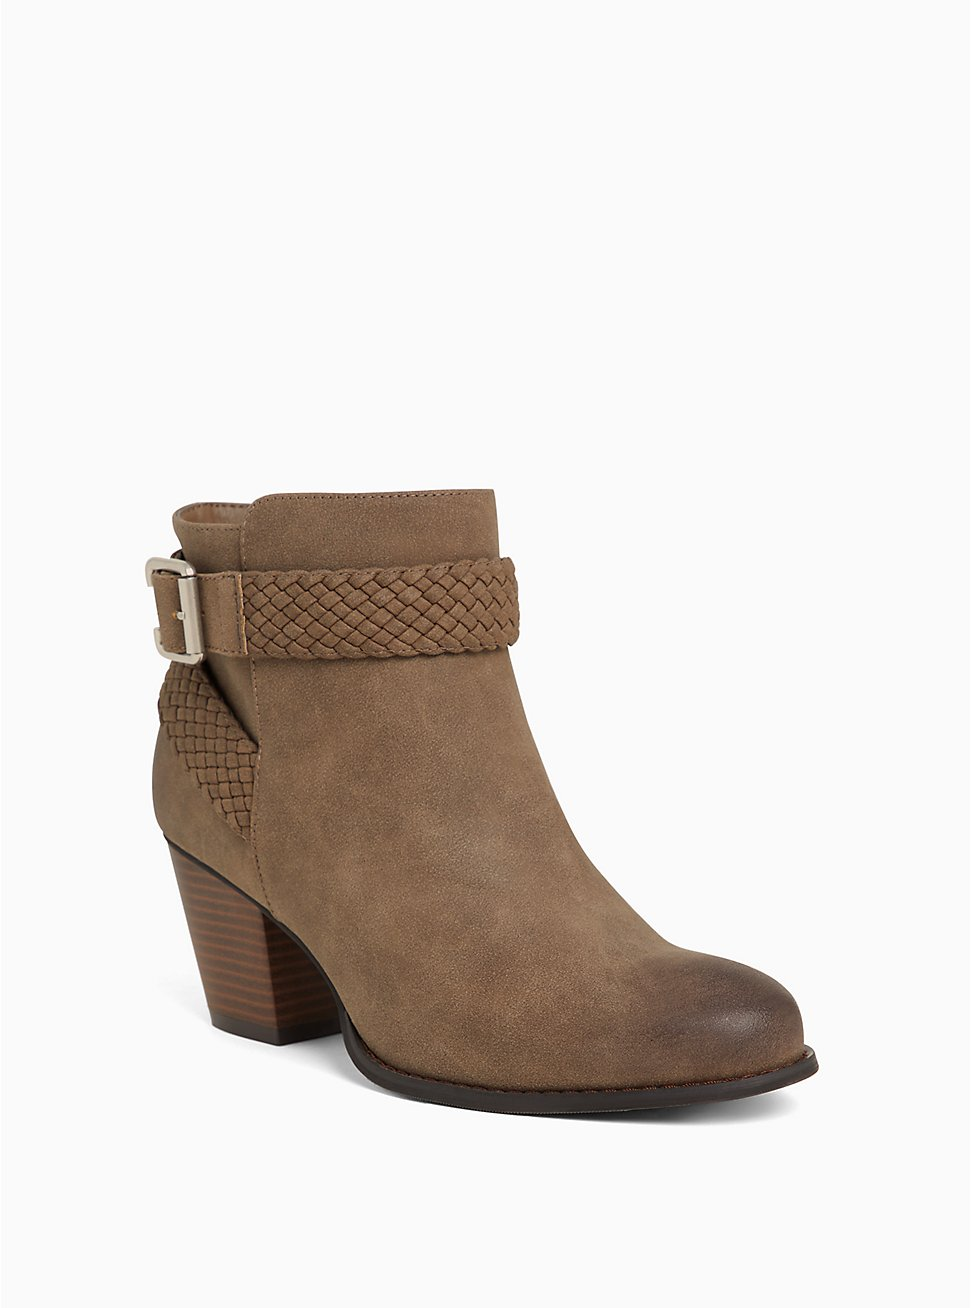 Brown Faux Leather Braided Bootie (WW), , hi-res